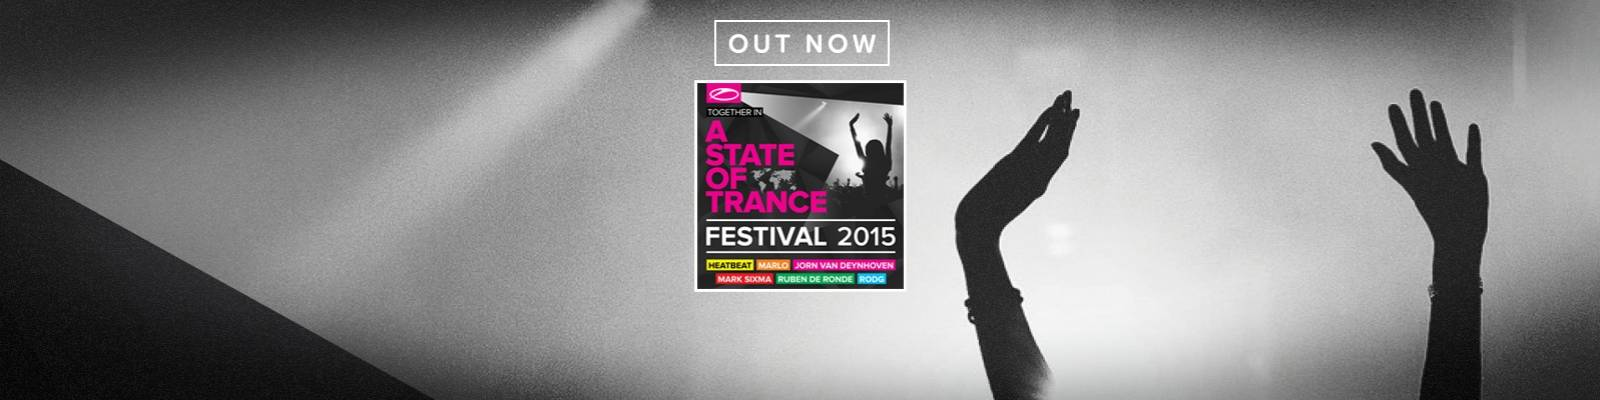 'A State Of Trance Festival 2015′ [OUT NOW]